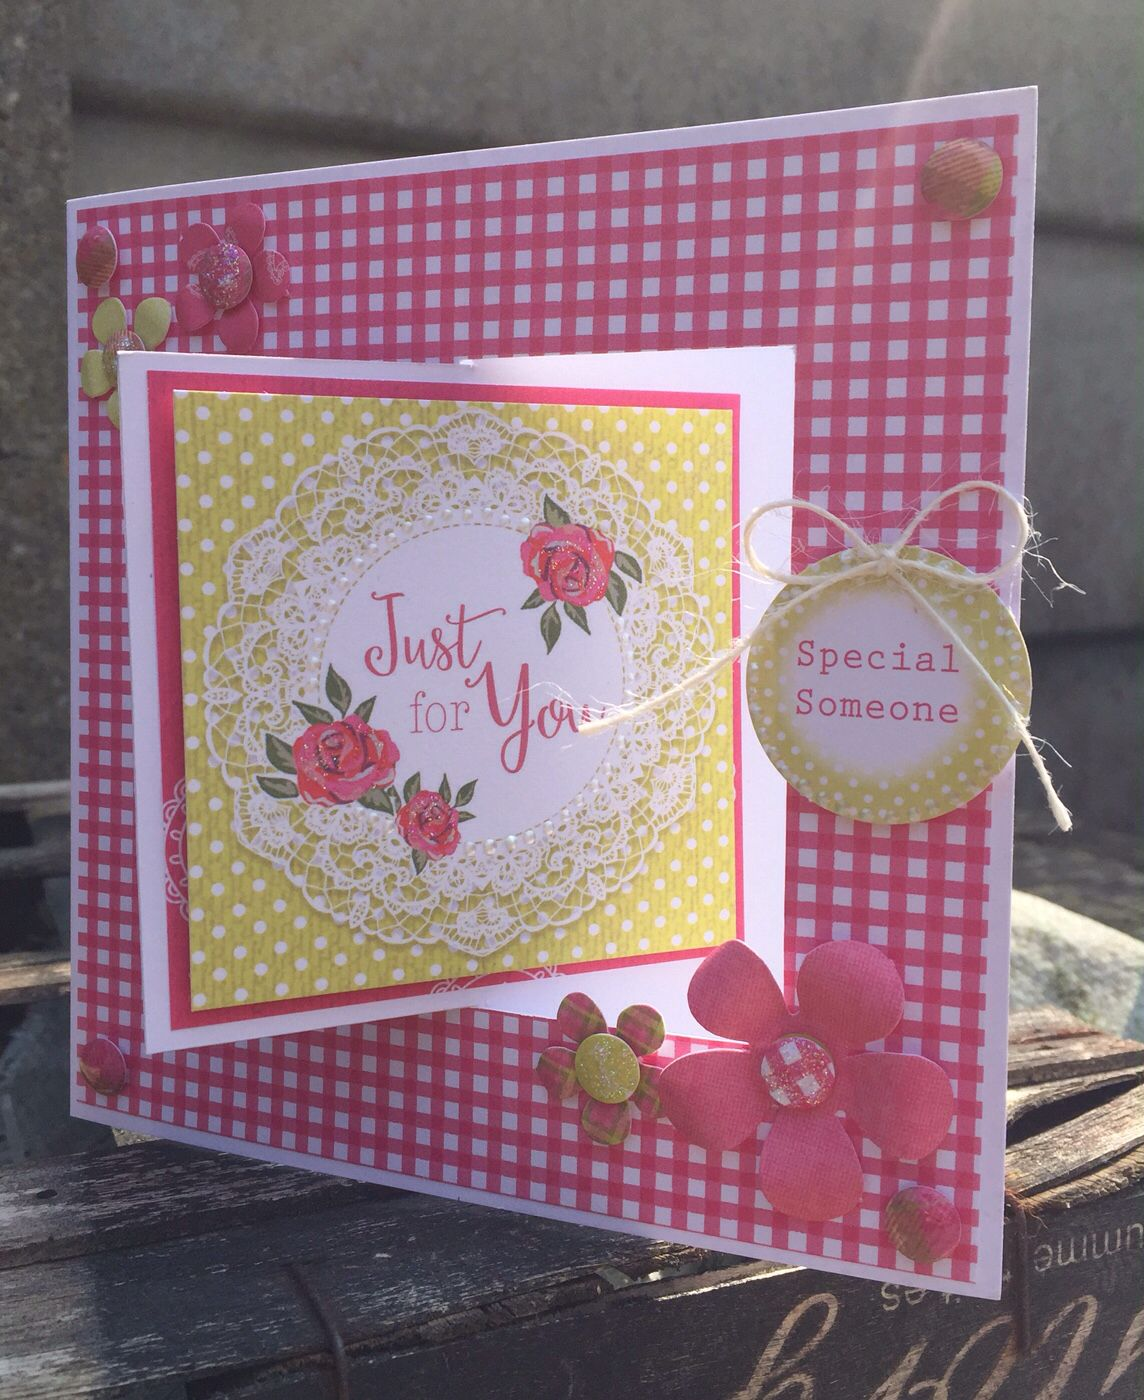 Paper Pads For Card Making Part - 39: Card Designed By Julie Hickey Using Countryside Paper Pad And Candi